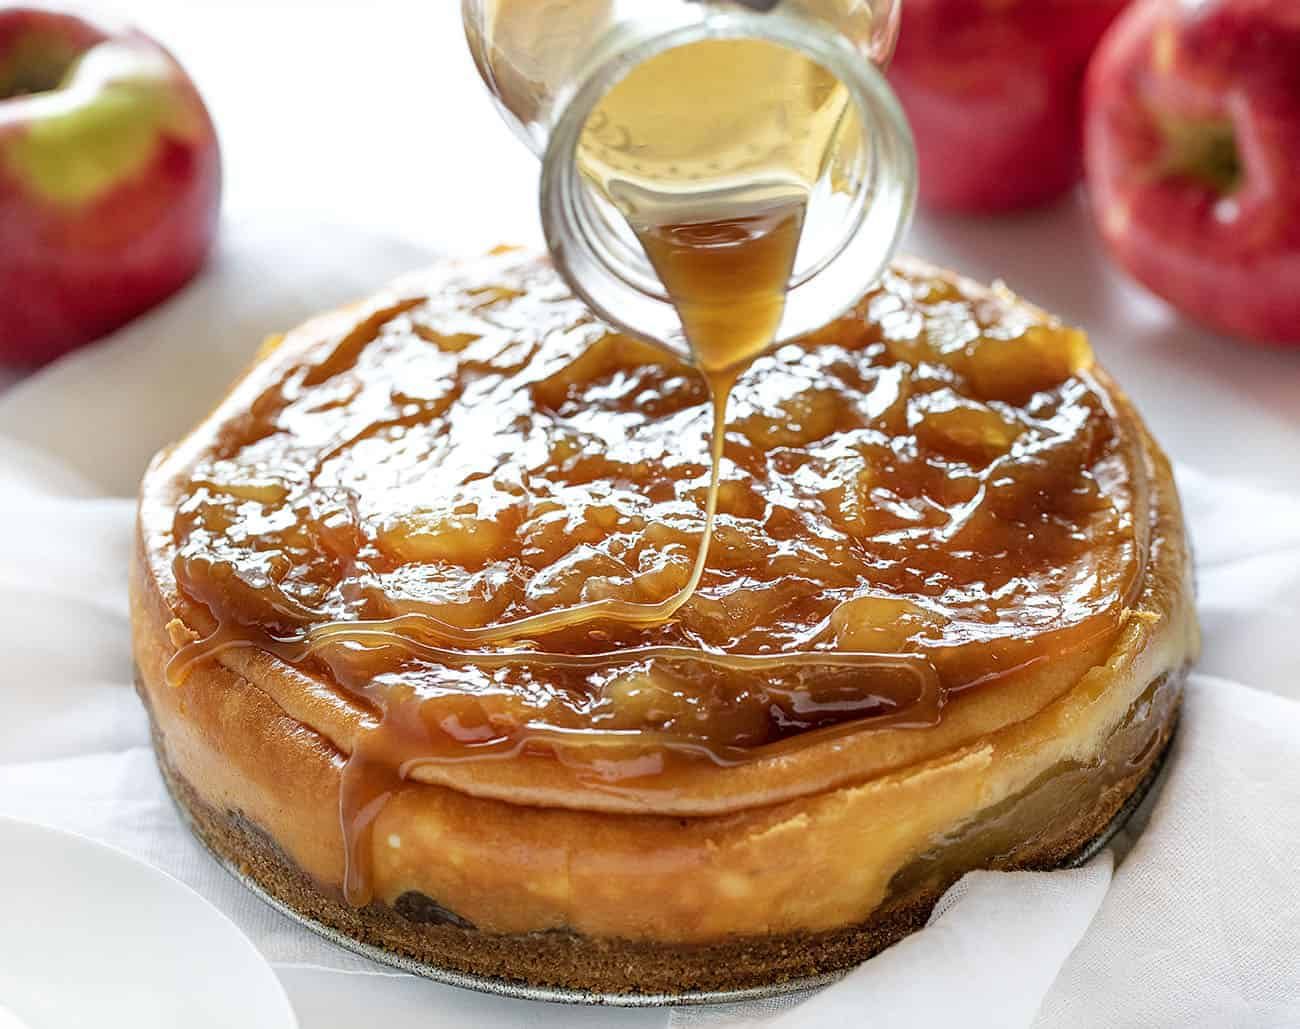 Drizzling Caramel Over a Caramel Apple Cheesecake